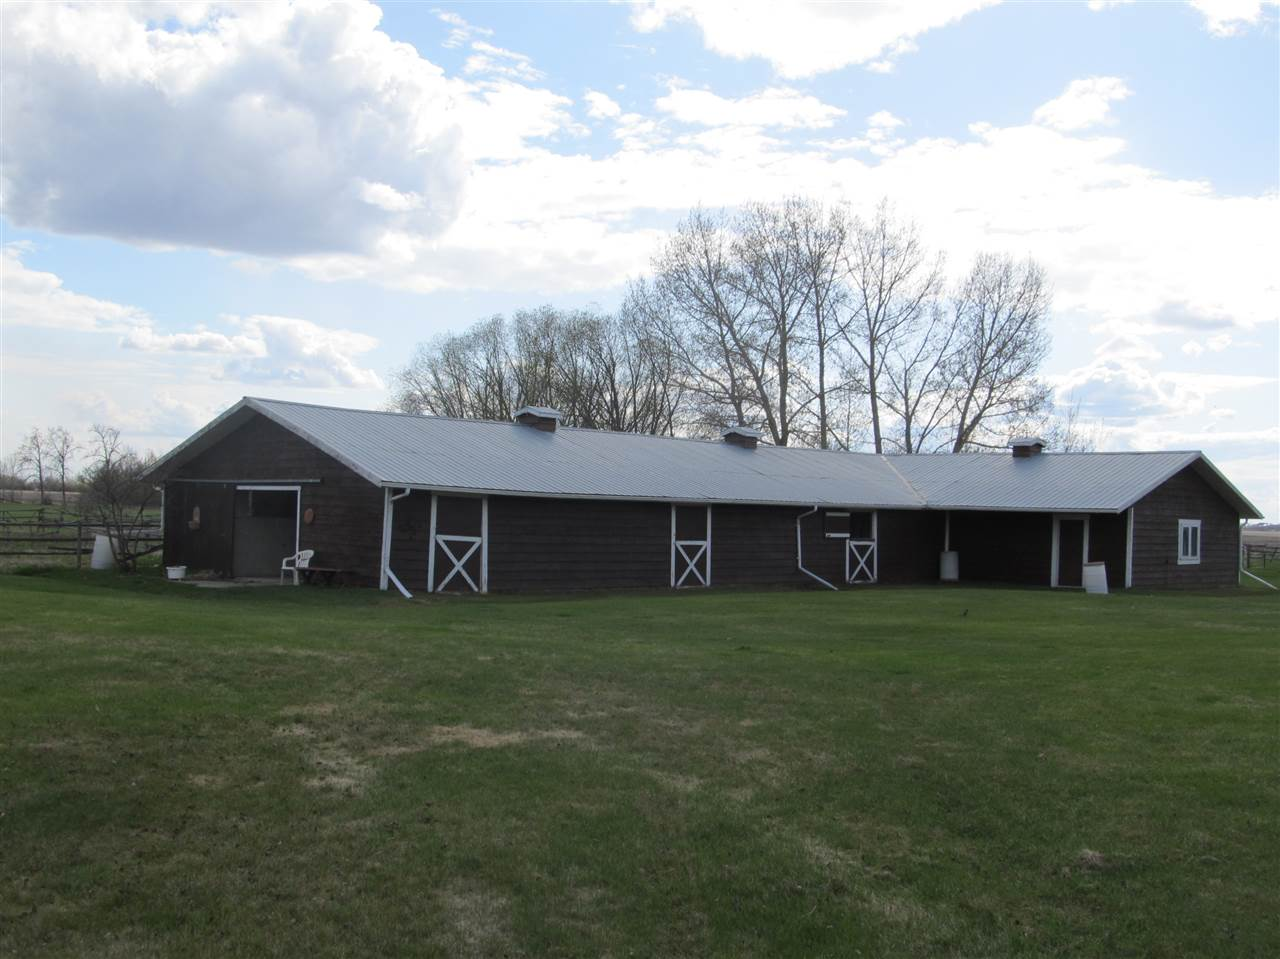 Photo 18: 25308 Twp Rd 570: Rural Sturgeon County House for sale : MLS(r) # E4063269